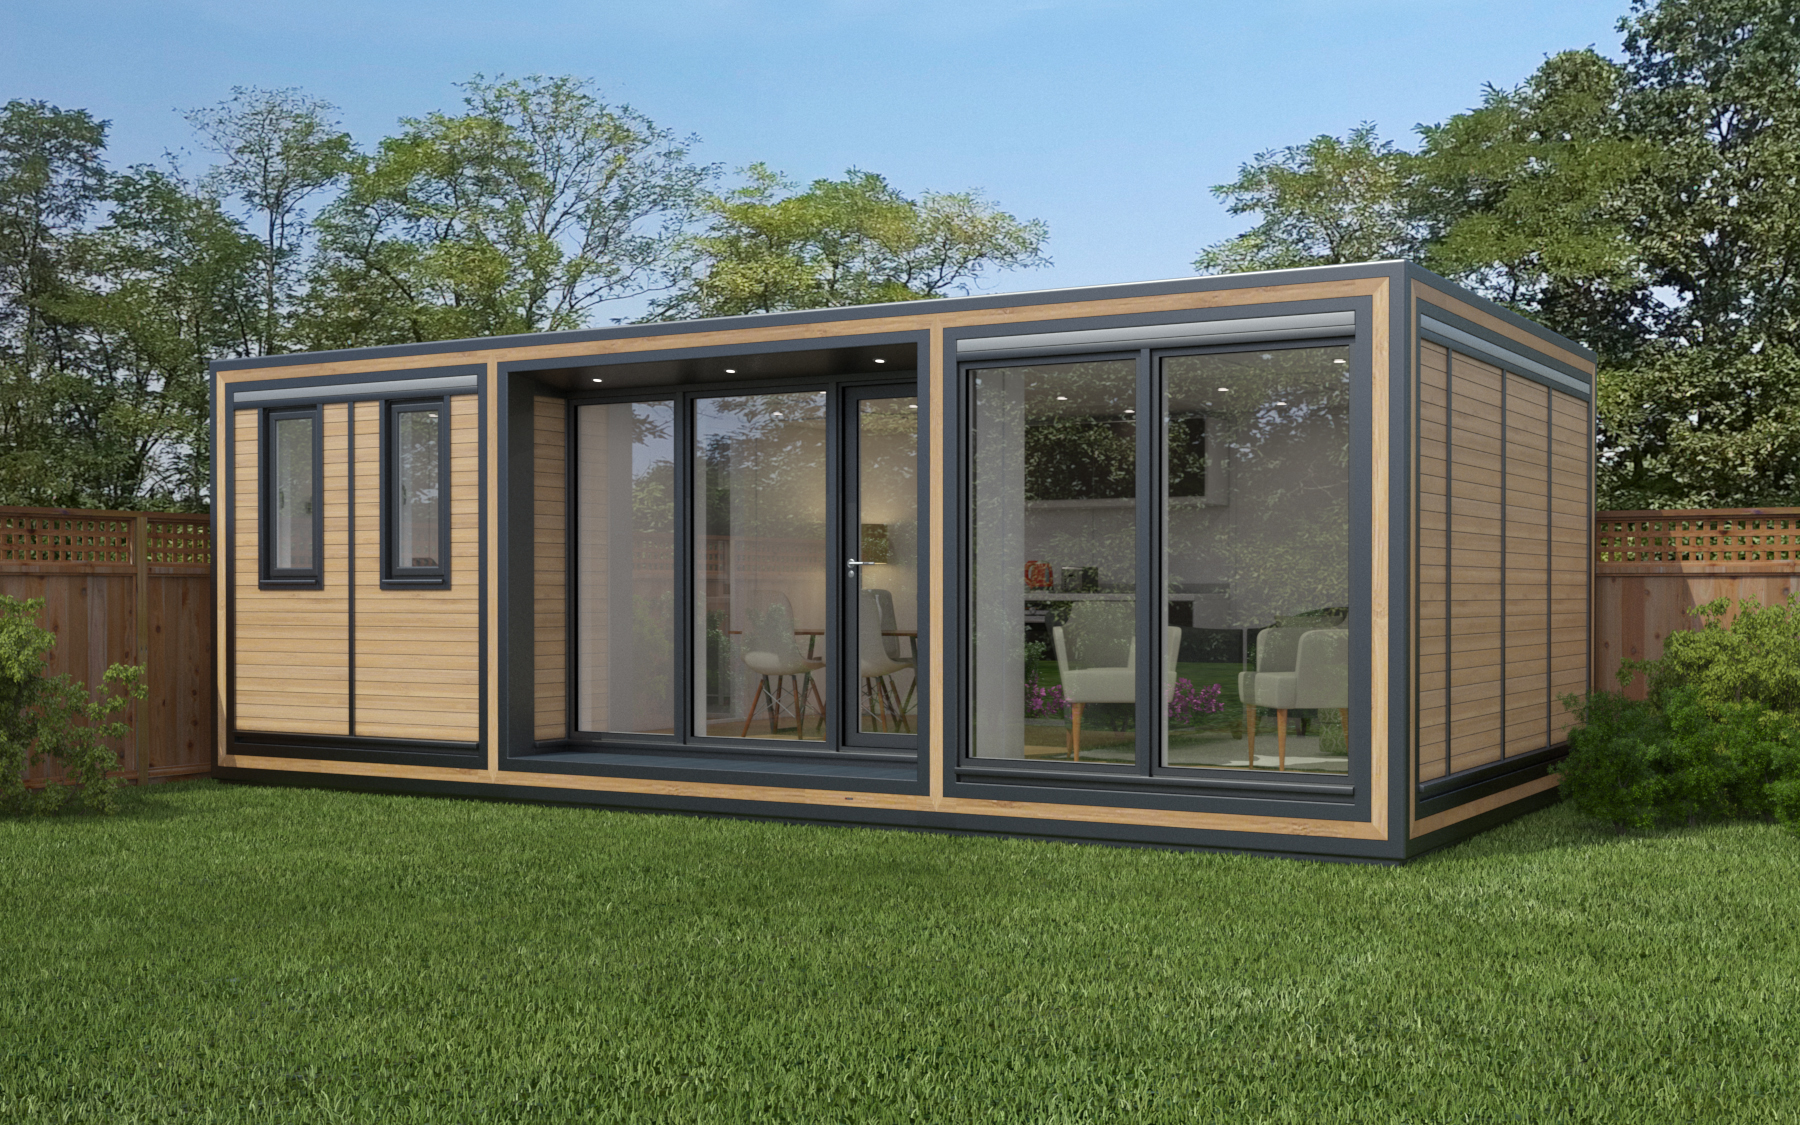 ZEDBOX 735  (7 x 3.5)  Internal Size: 7472 x 3791  External Size: 7942 x 4261  Bed Options: Single or Double or Two Doubles.  Kitchen Options: Micro Kitchen or Kitchen  Wet Room Options: Yes  Portico: Yes  Price:  £37,000    Optional Extras    Request Zedbox Catalogue